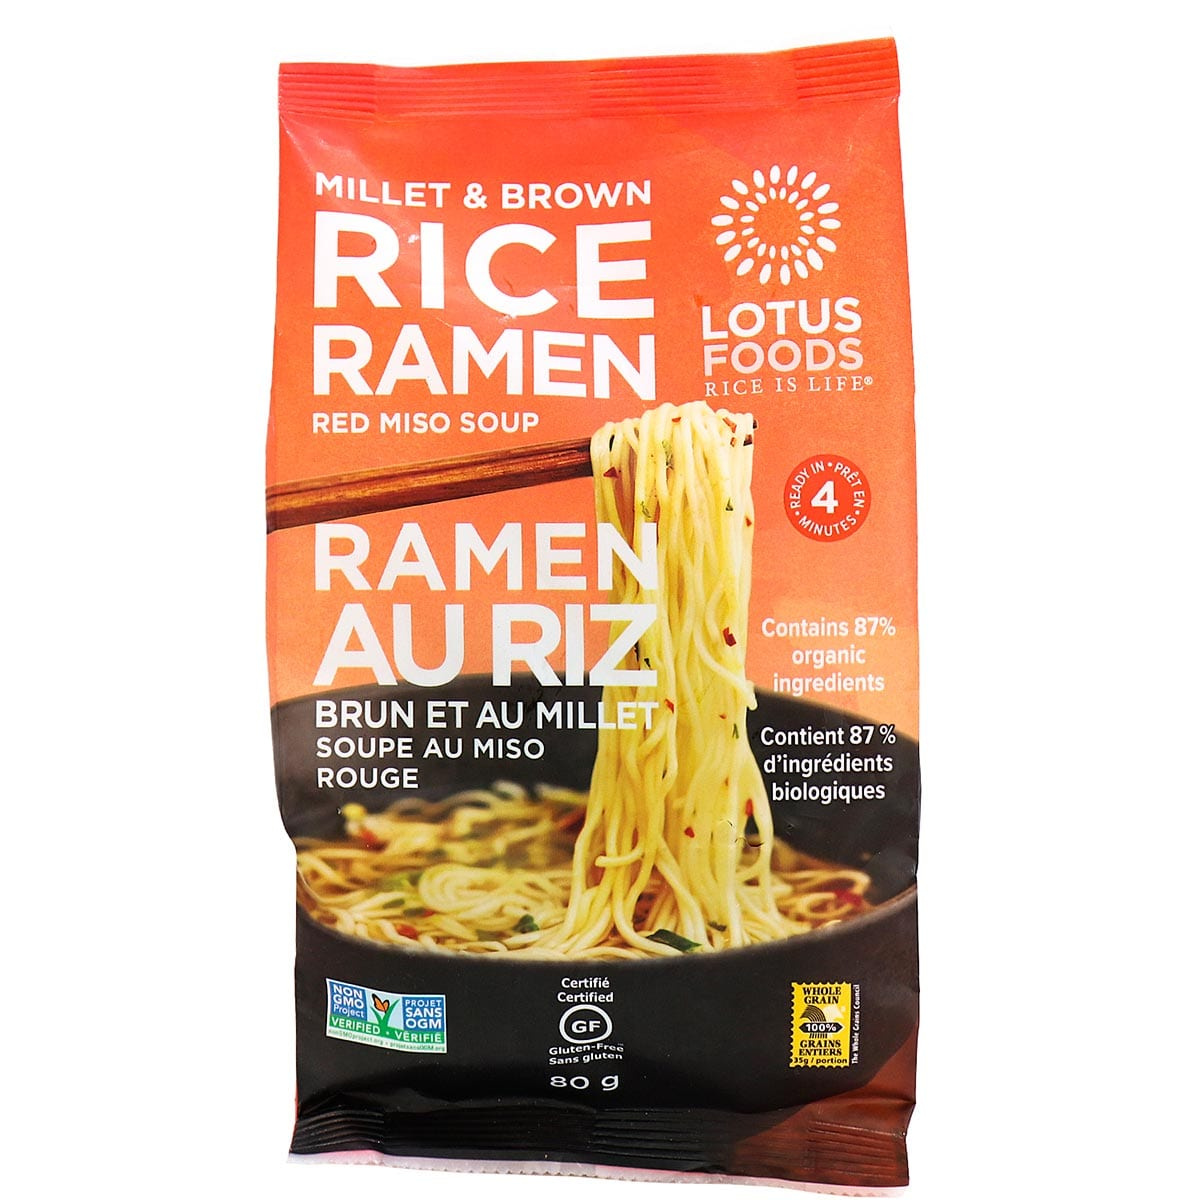 Lotus Foods Millet And Brown Rice Ramen Noodles With Miso Soup In Canada Gluten Free Soup Noodles Naturamarket Ca